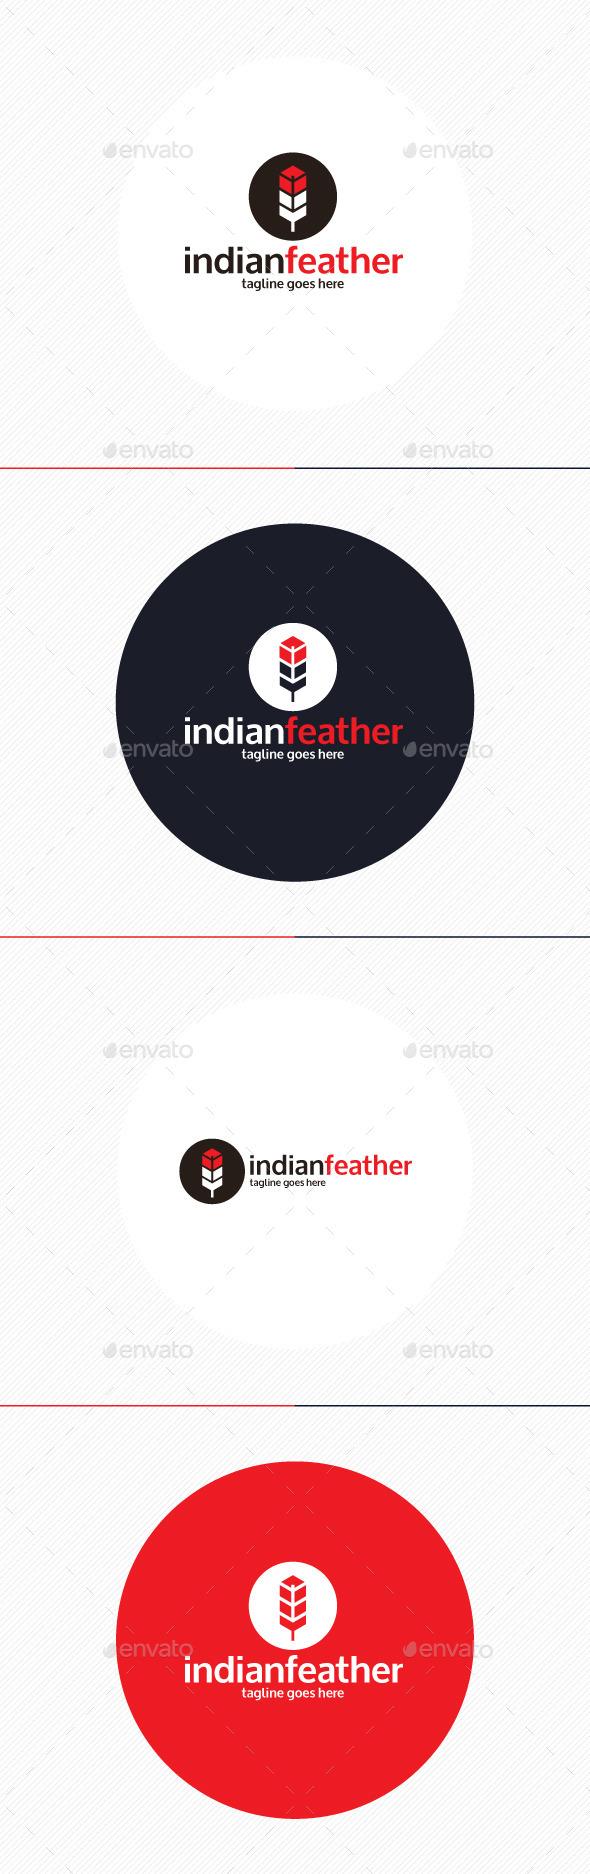 Indian Feather Logo - Vector Abstract